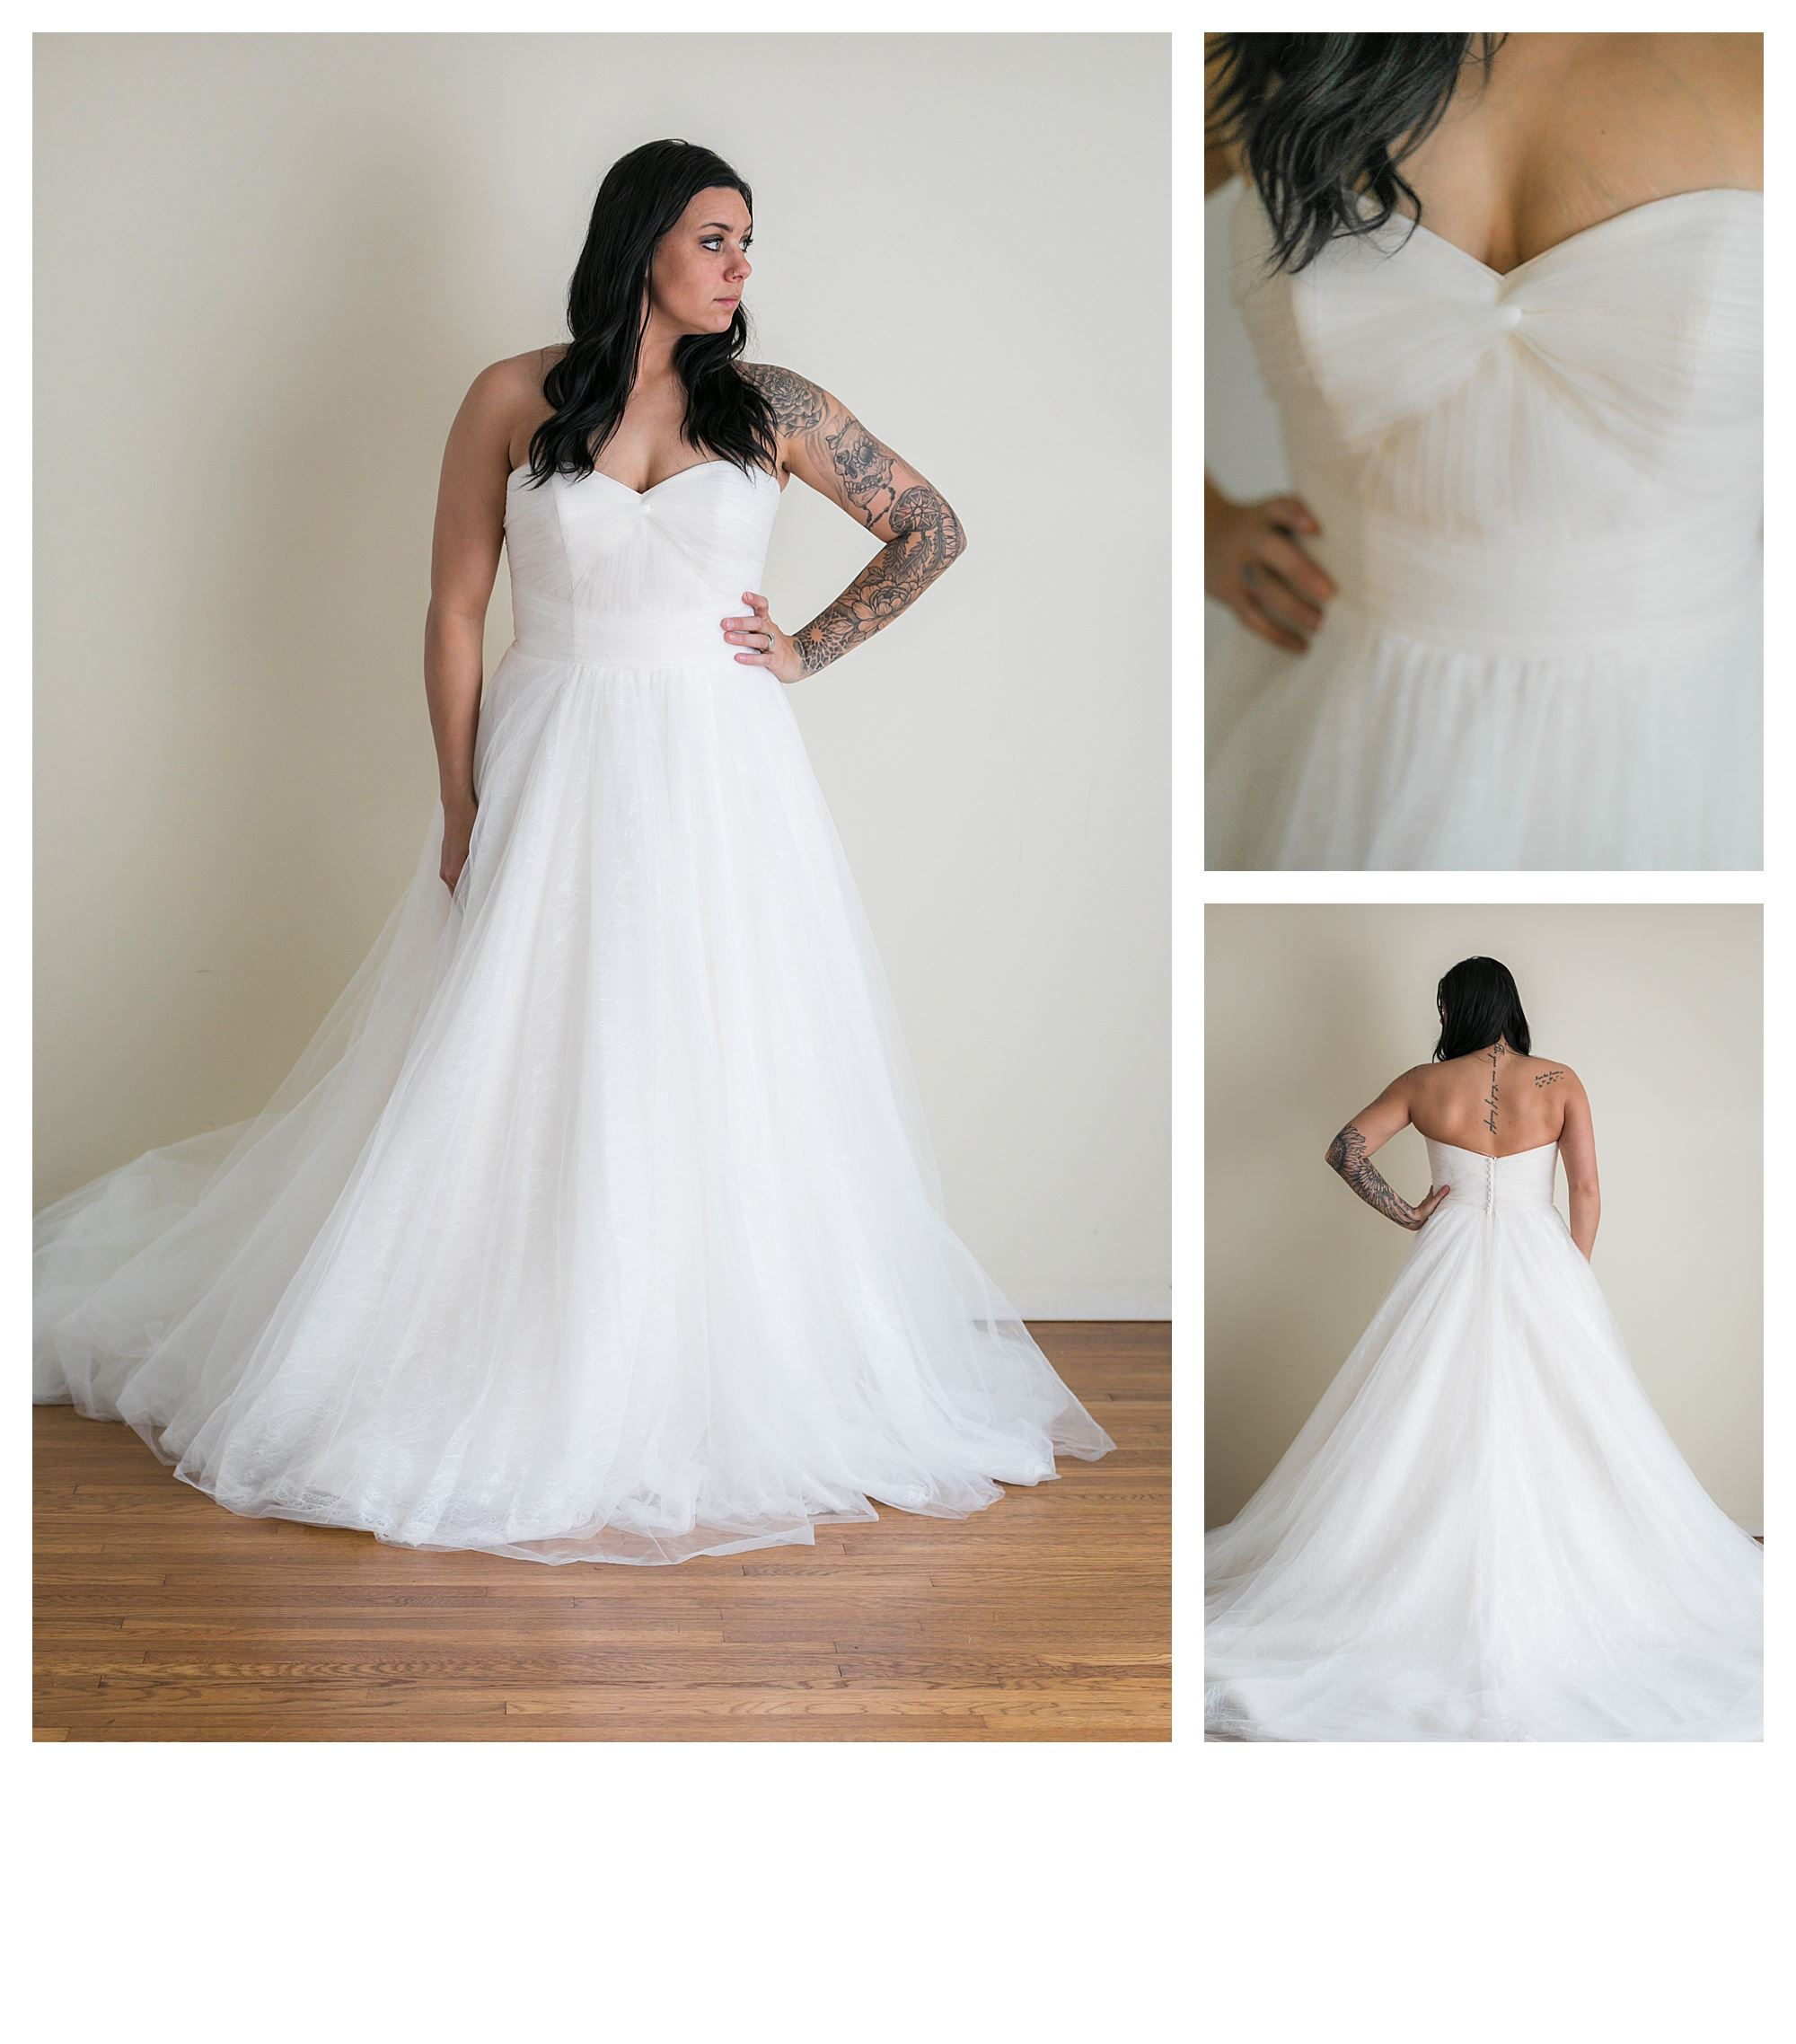 Sabrina - Size 14 - Ivory/Blush Pink - Originally priced $1299 - Sample box price $899